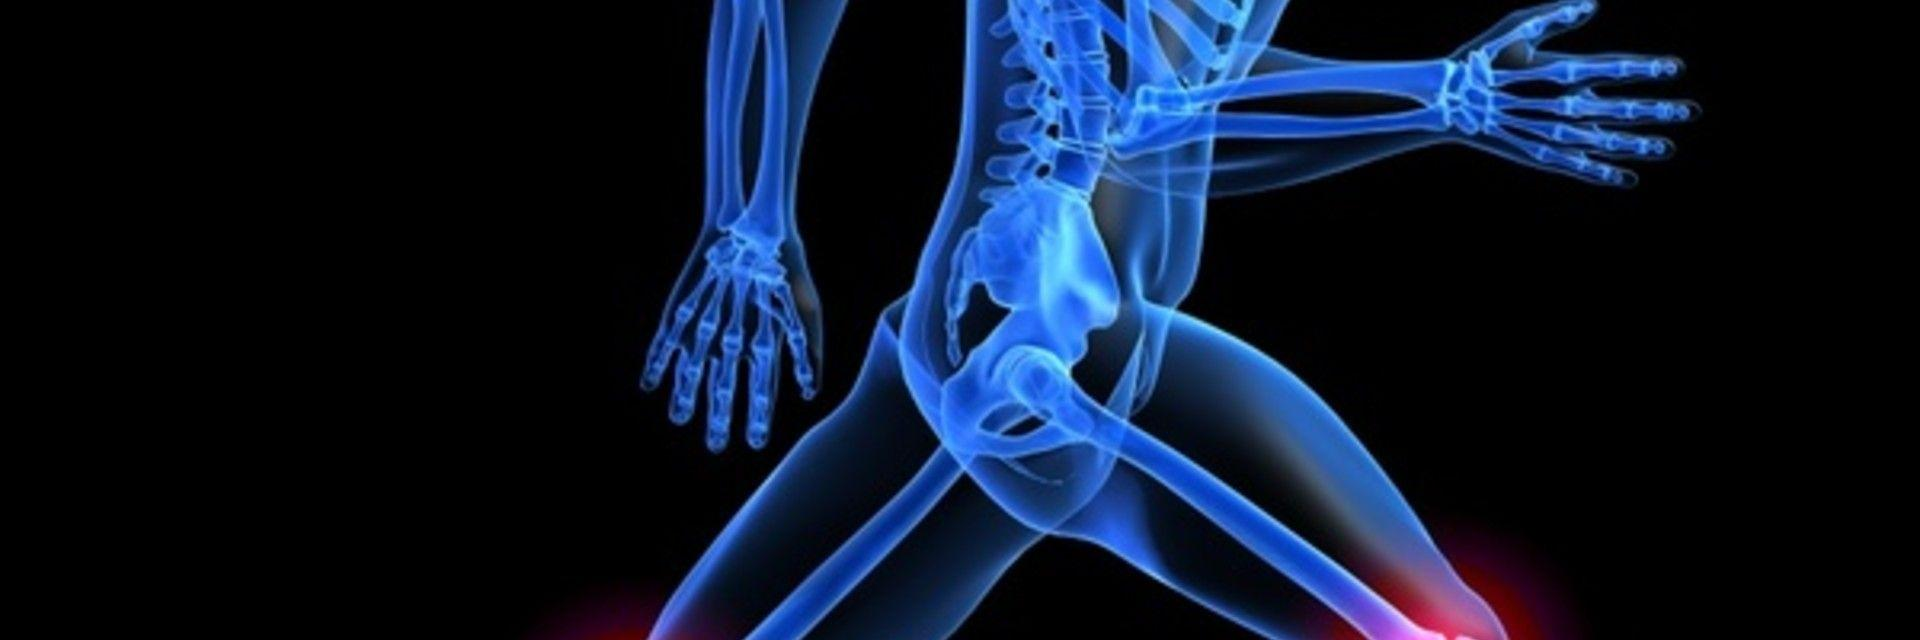 Finding a Solution for Severe Osteoarthritis in the Knee